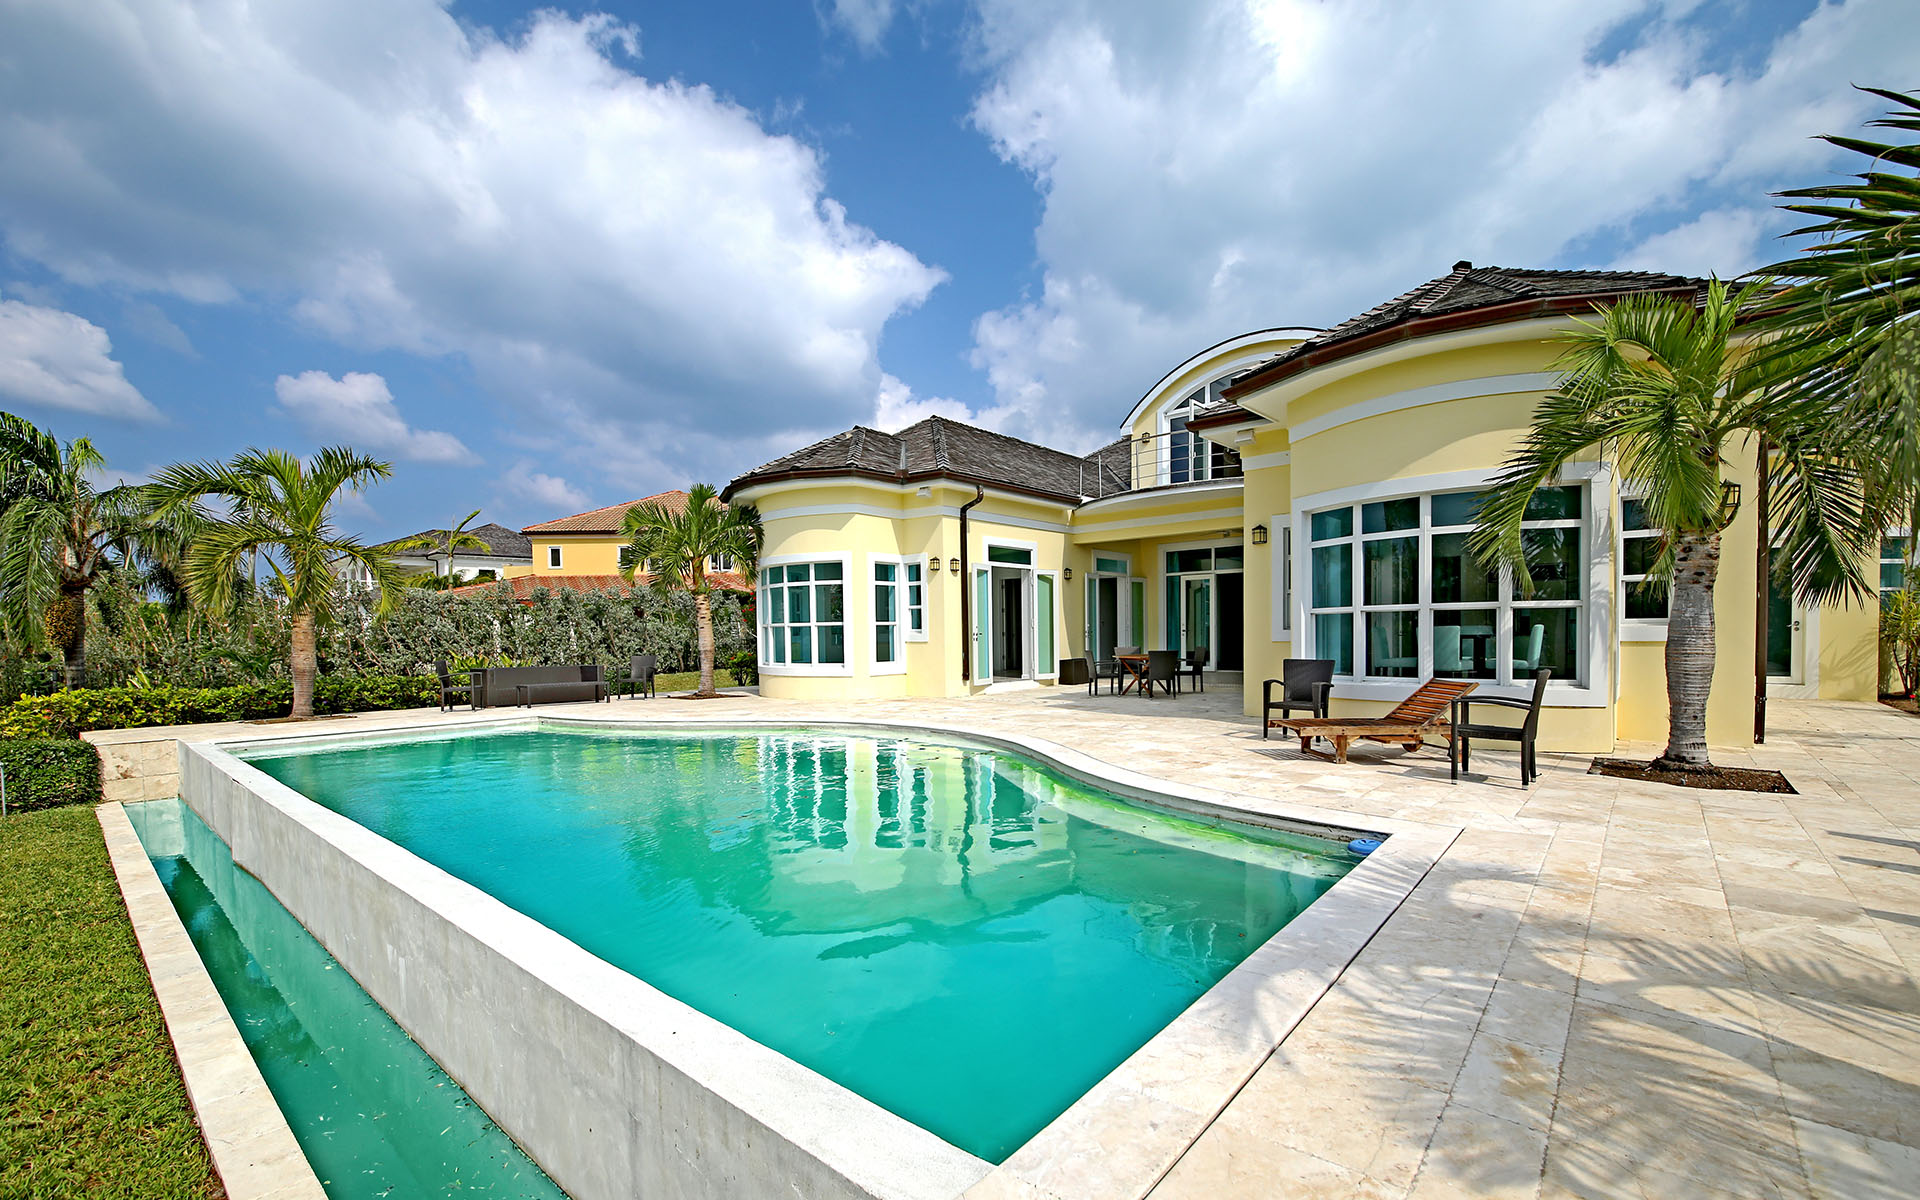 Single Family Home for Sale at Ocean Club Estates Contemporary Golf Course Residence - MLS 32361 Ocean Club Estates, Paradise Island, Nassau And Paradise Island Bahamas